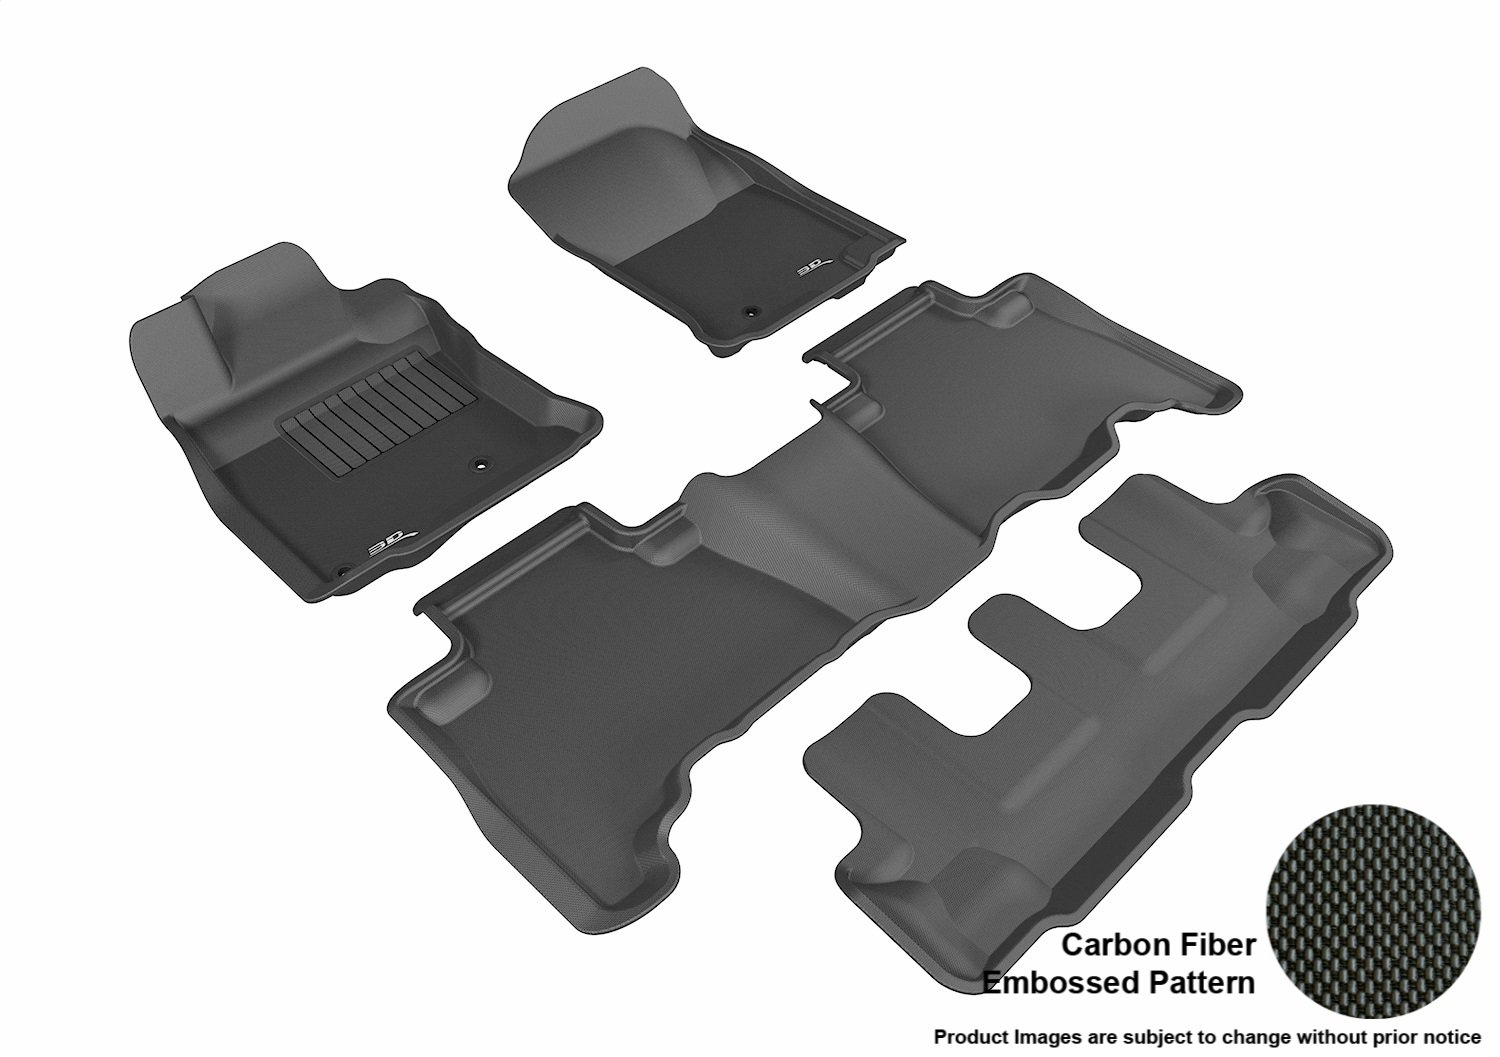 Kagu Rubber 3D MAXpider Second Row Custom Fit All-Weather Floor Mat for Select Toyota 4Runner Models Black